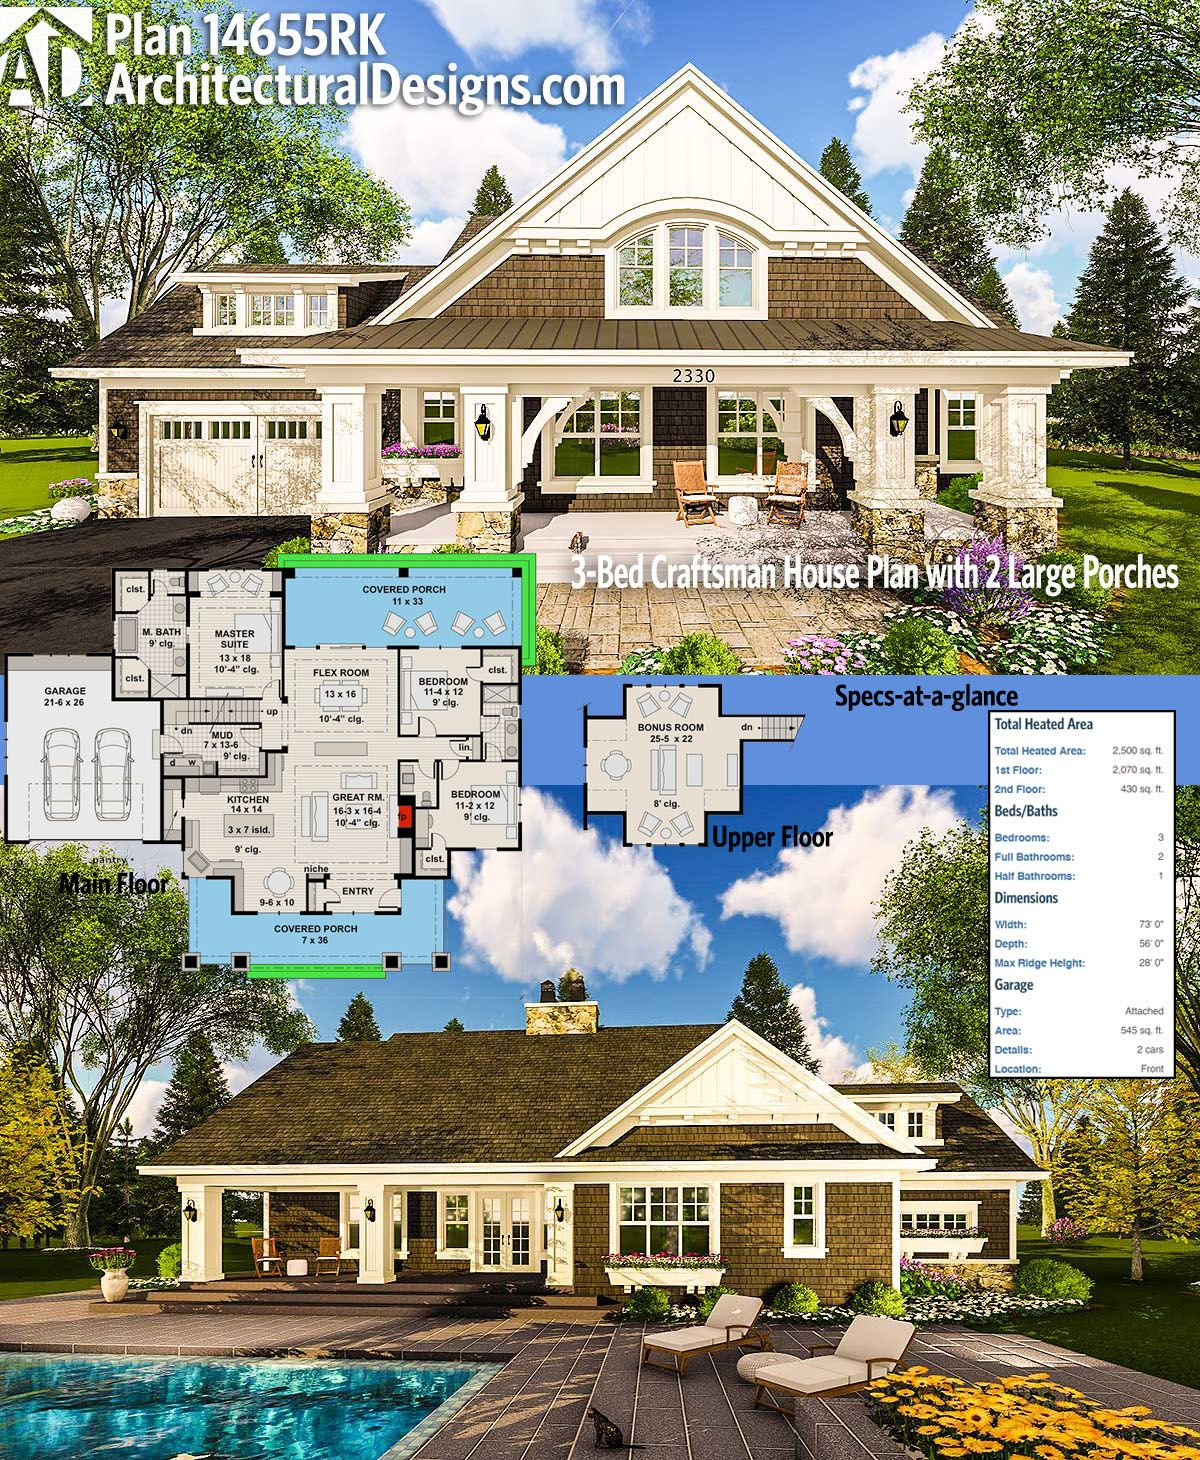 Architectural Designs Craftsman House Plan 14655RK has